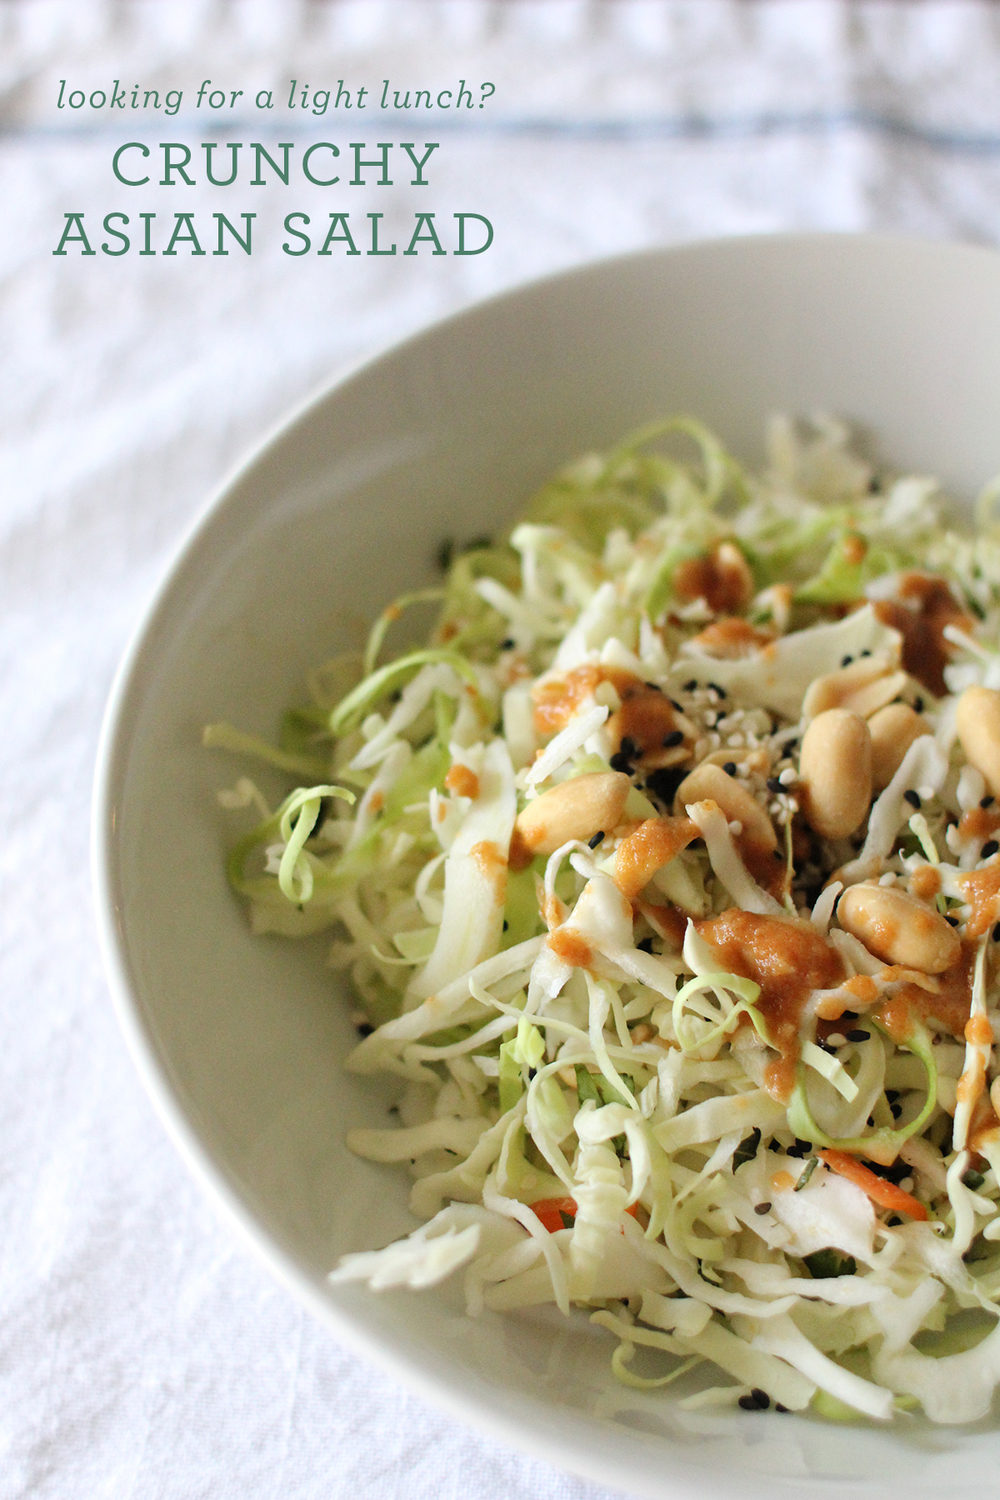 Crunchy Asian Salad | That's Pretty Ace